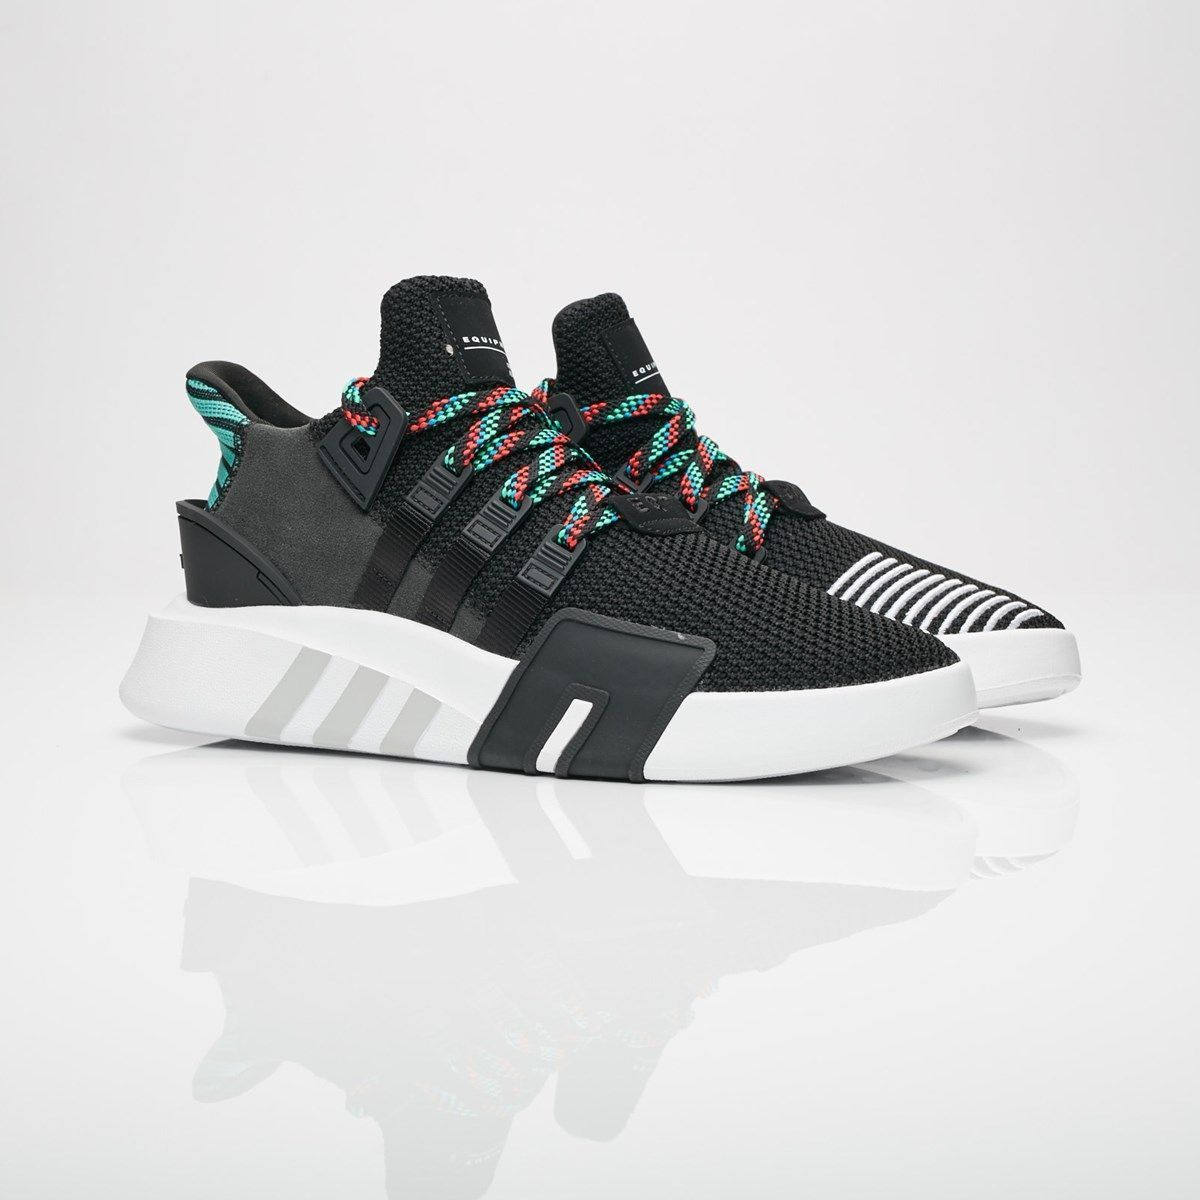 pretty nice 4dc1c 970dd This adidas Originals EQT Basketball ADV is inspired by the classic  Equipment 93 series, bringing